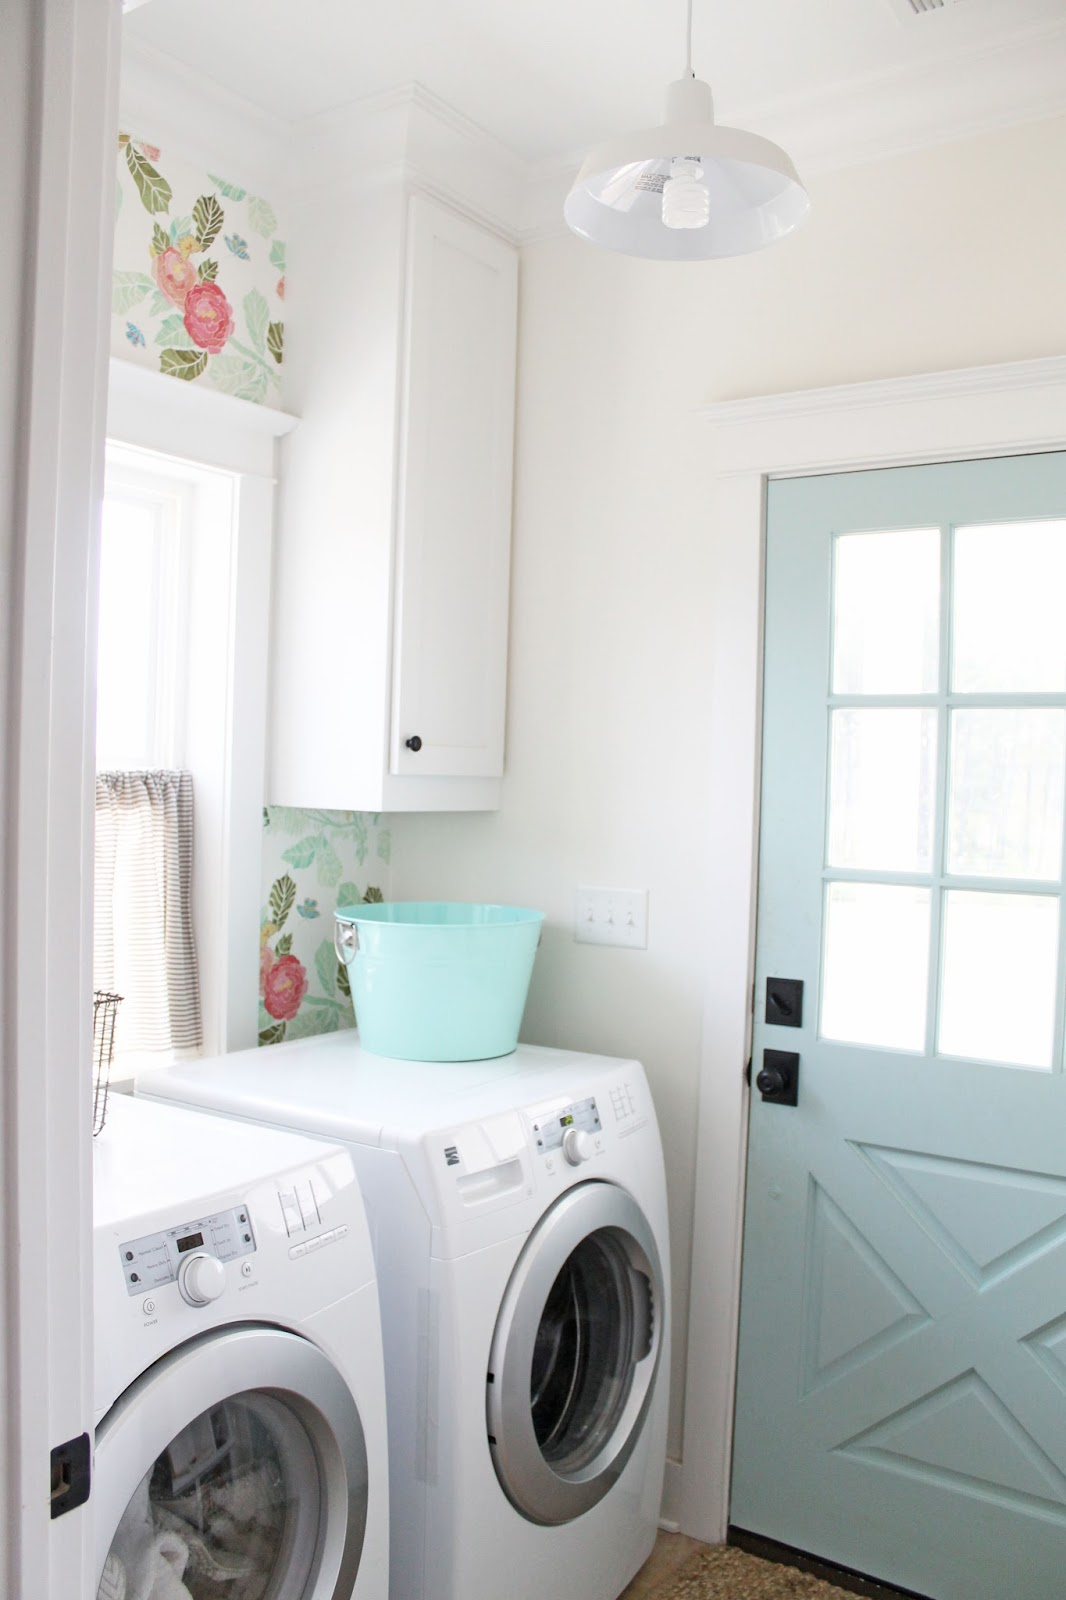 Laundry room with floral wallpaper